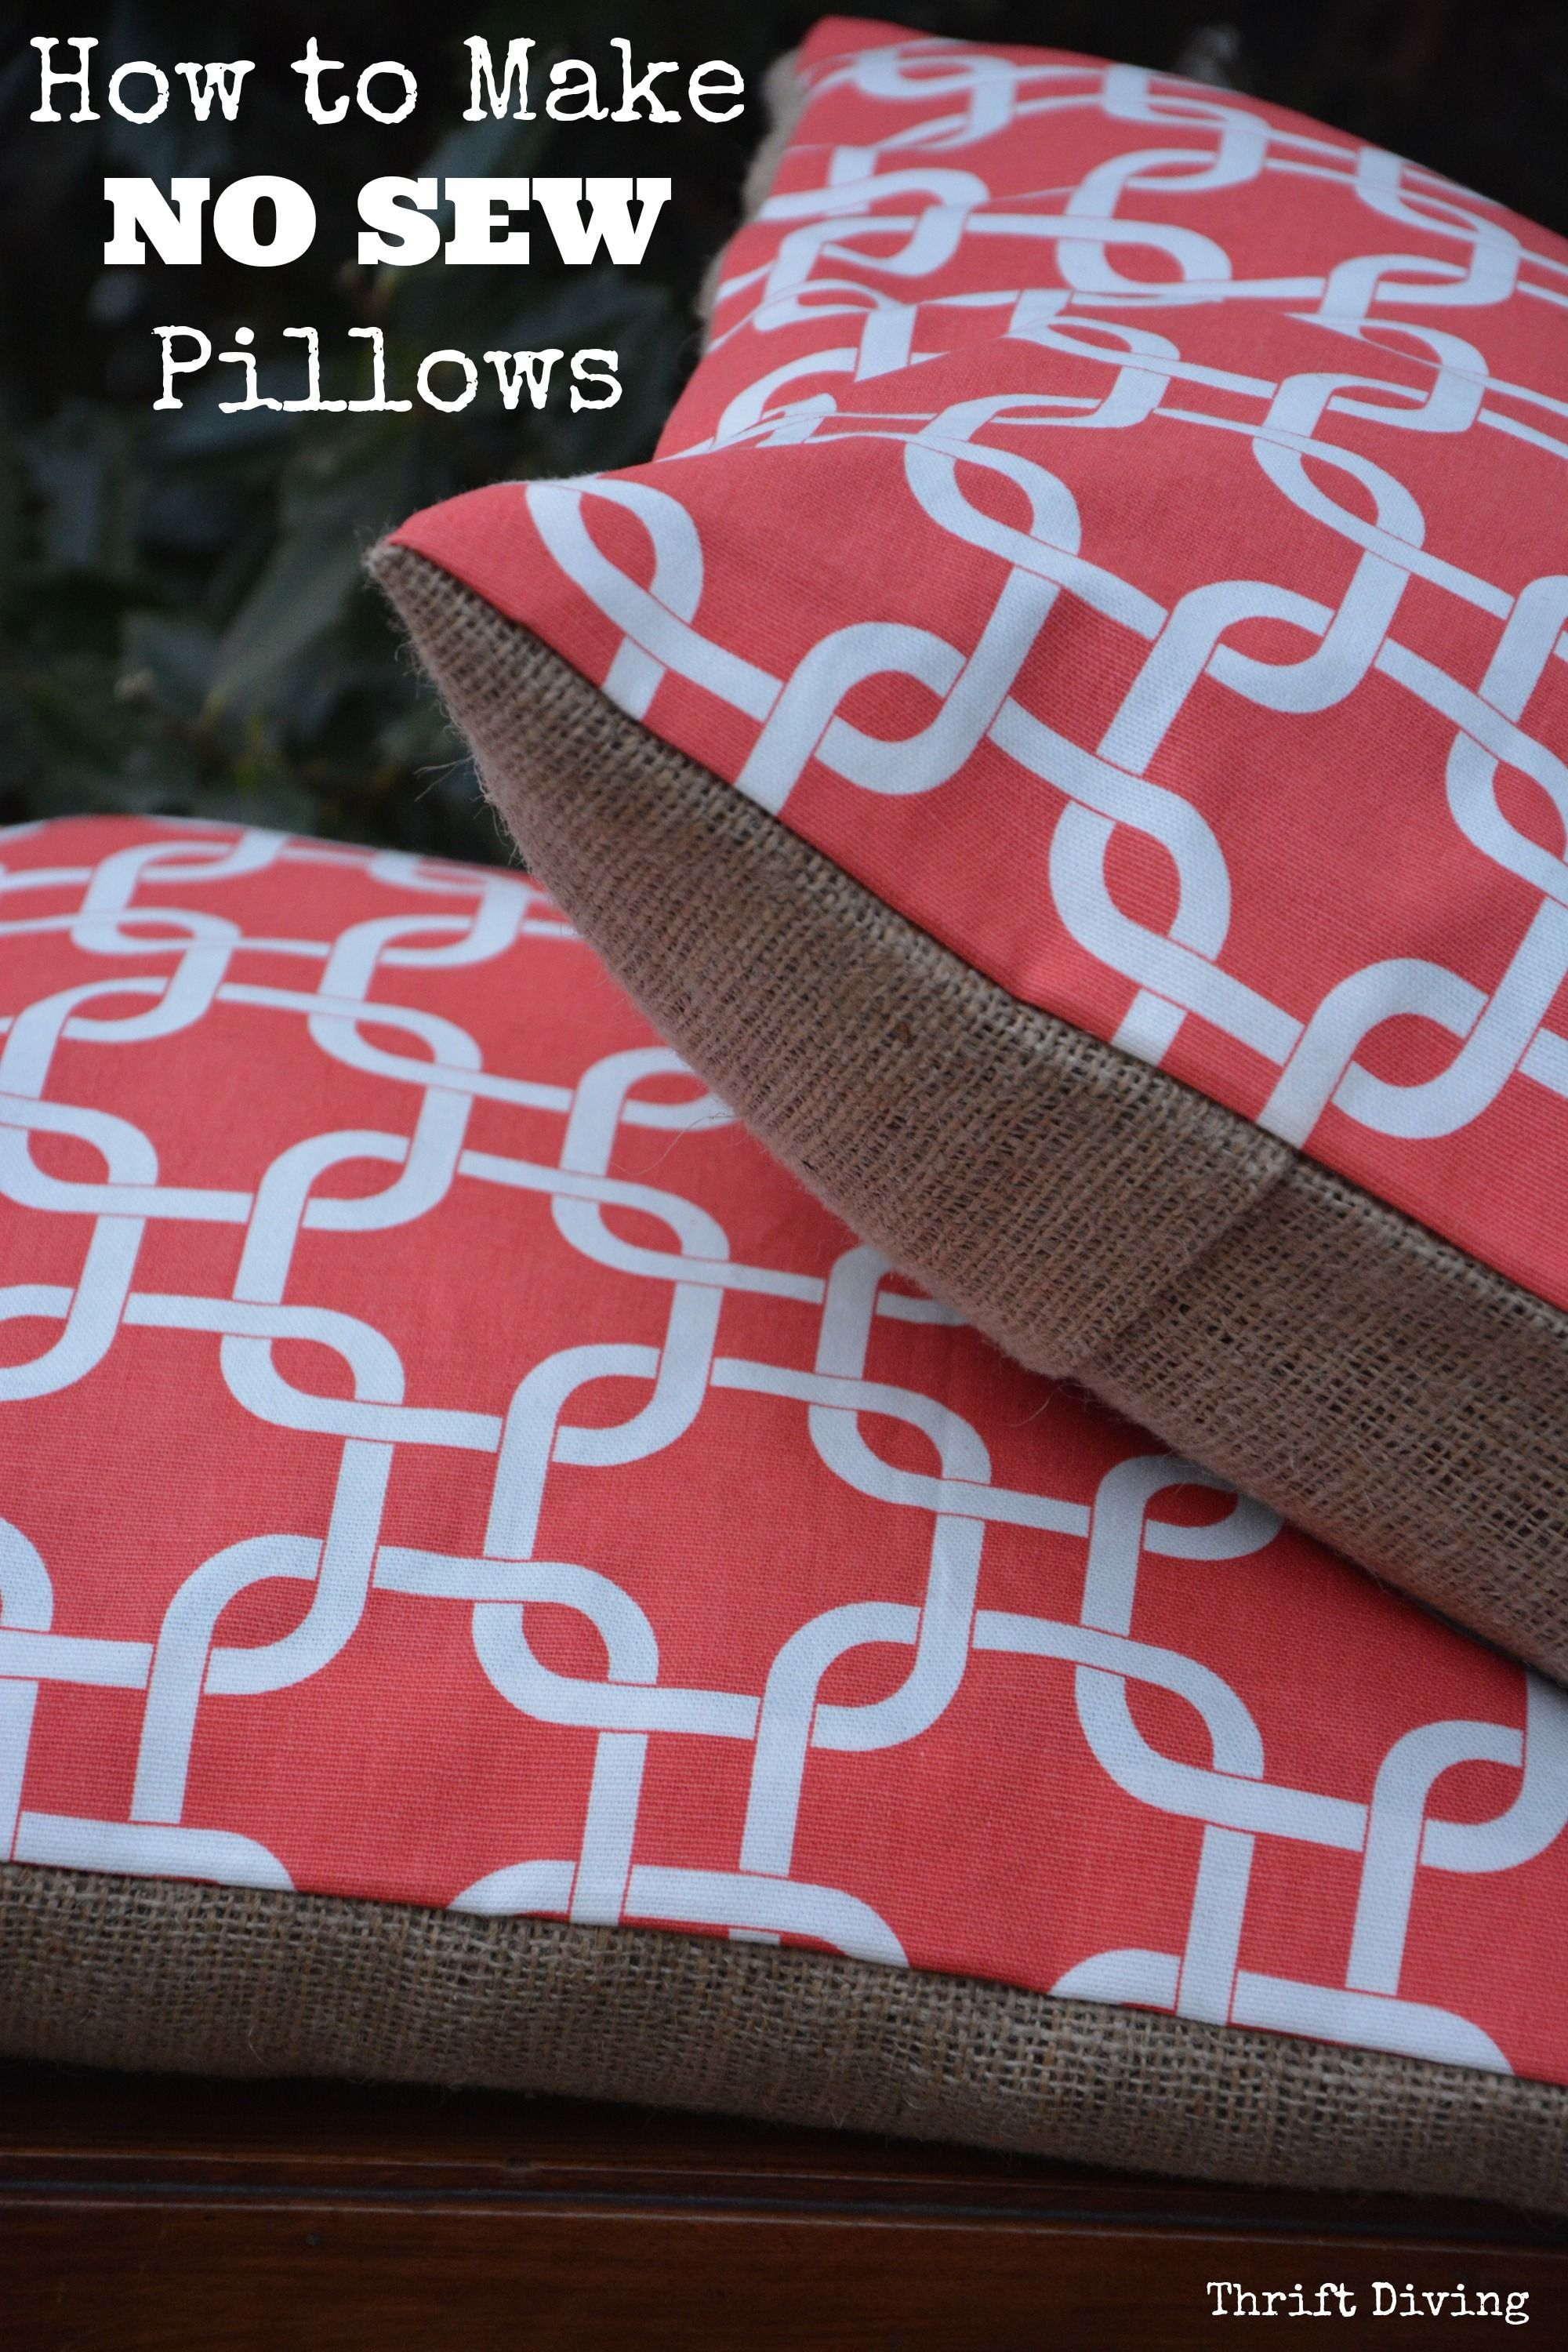 Explore Old Pillows No Sew Pillows and more! & How to Make Pretty \